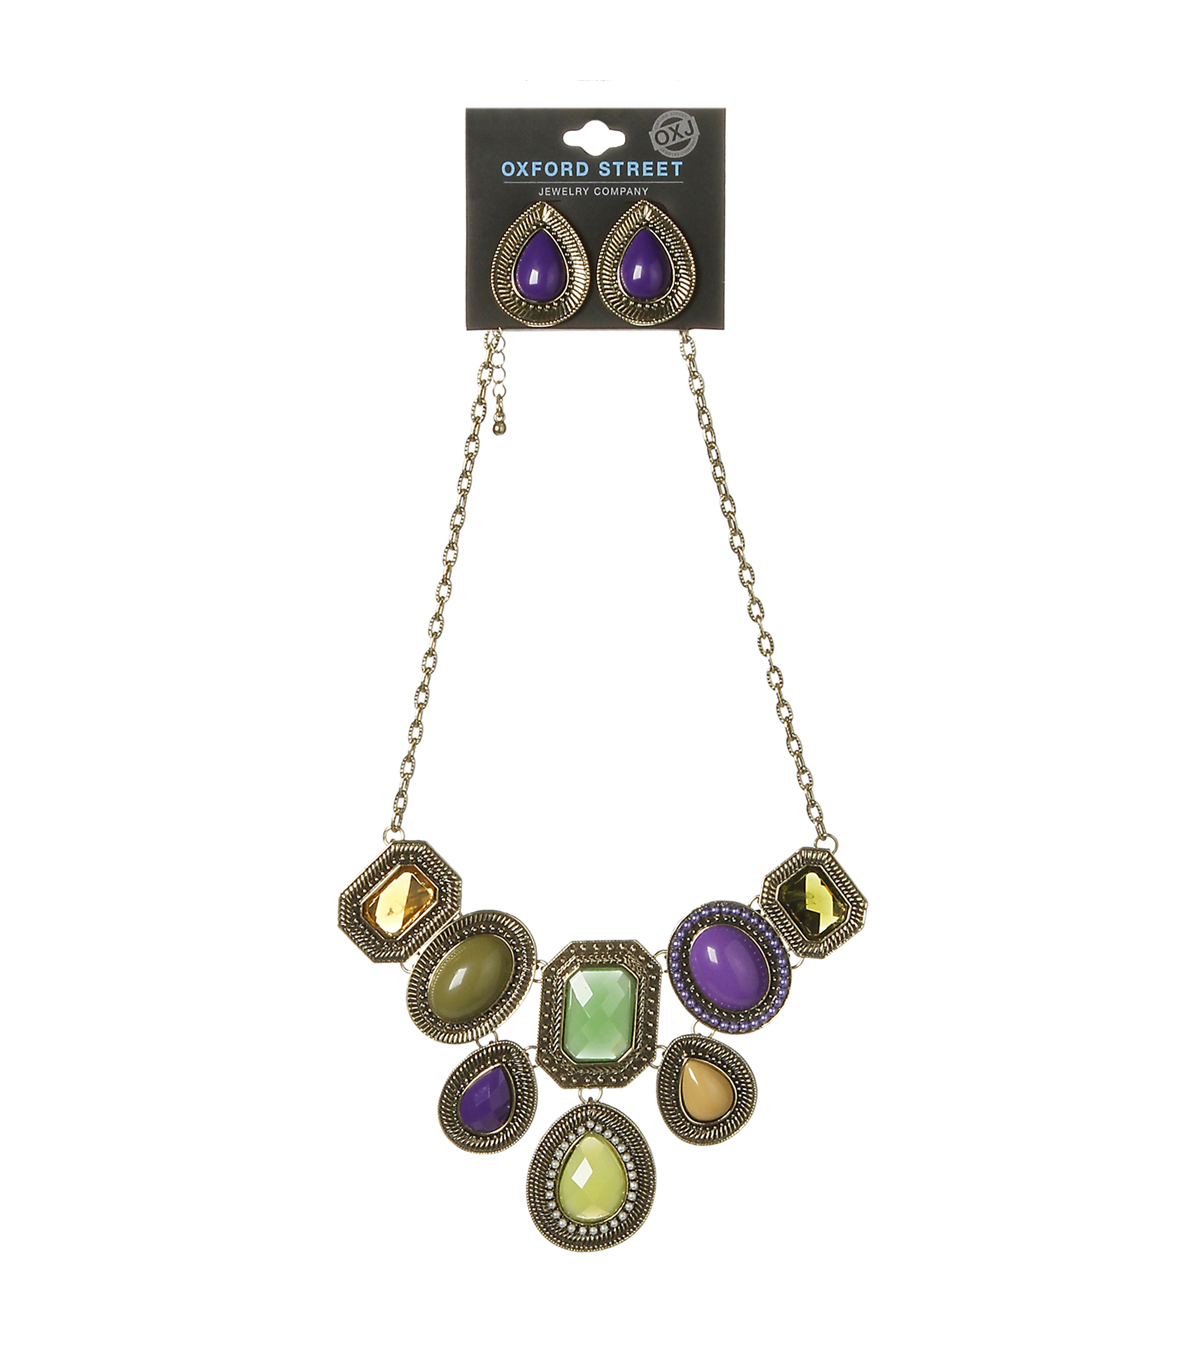 Oxford Street Jewelry Co. Multicolor Gem Necklace w/Matching Earrings